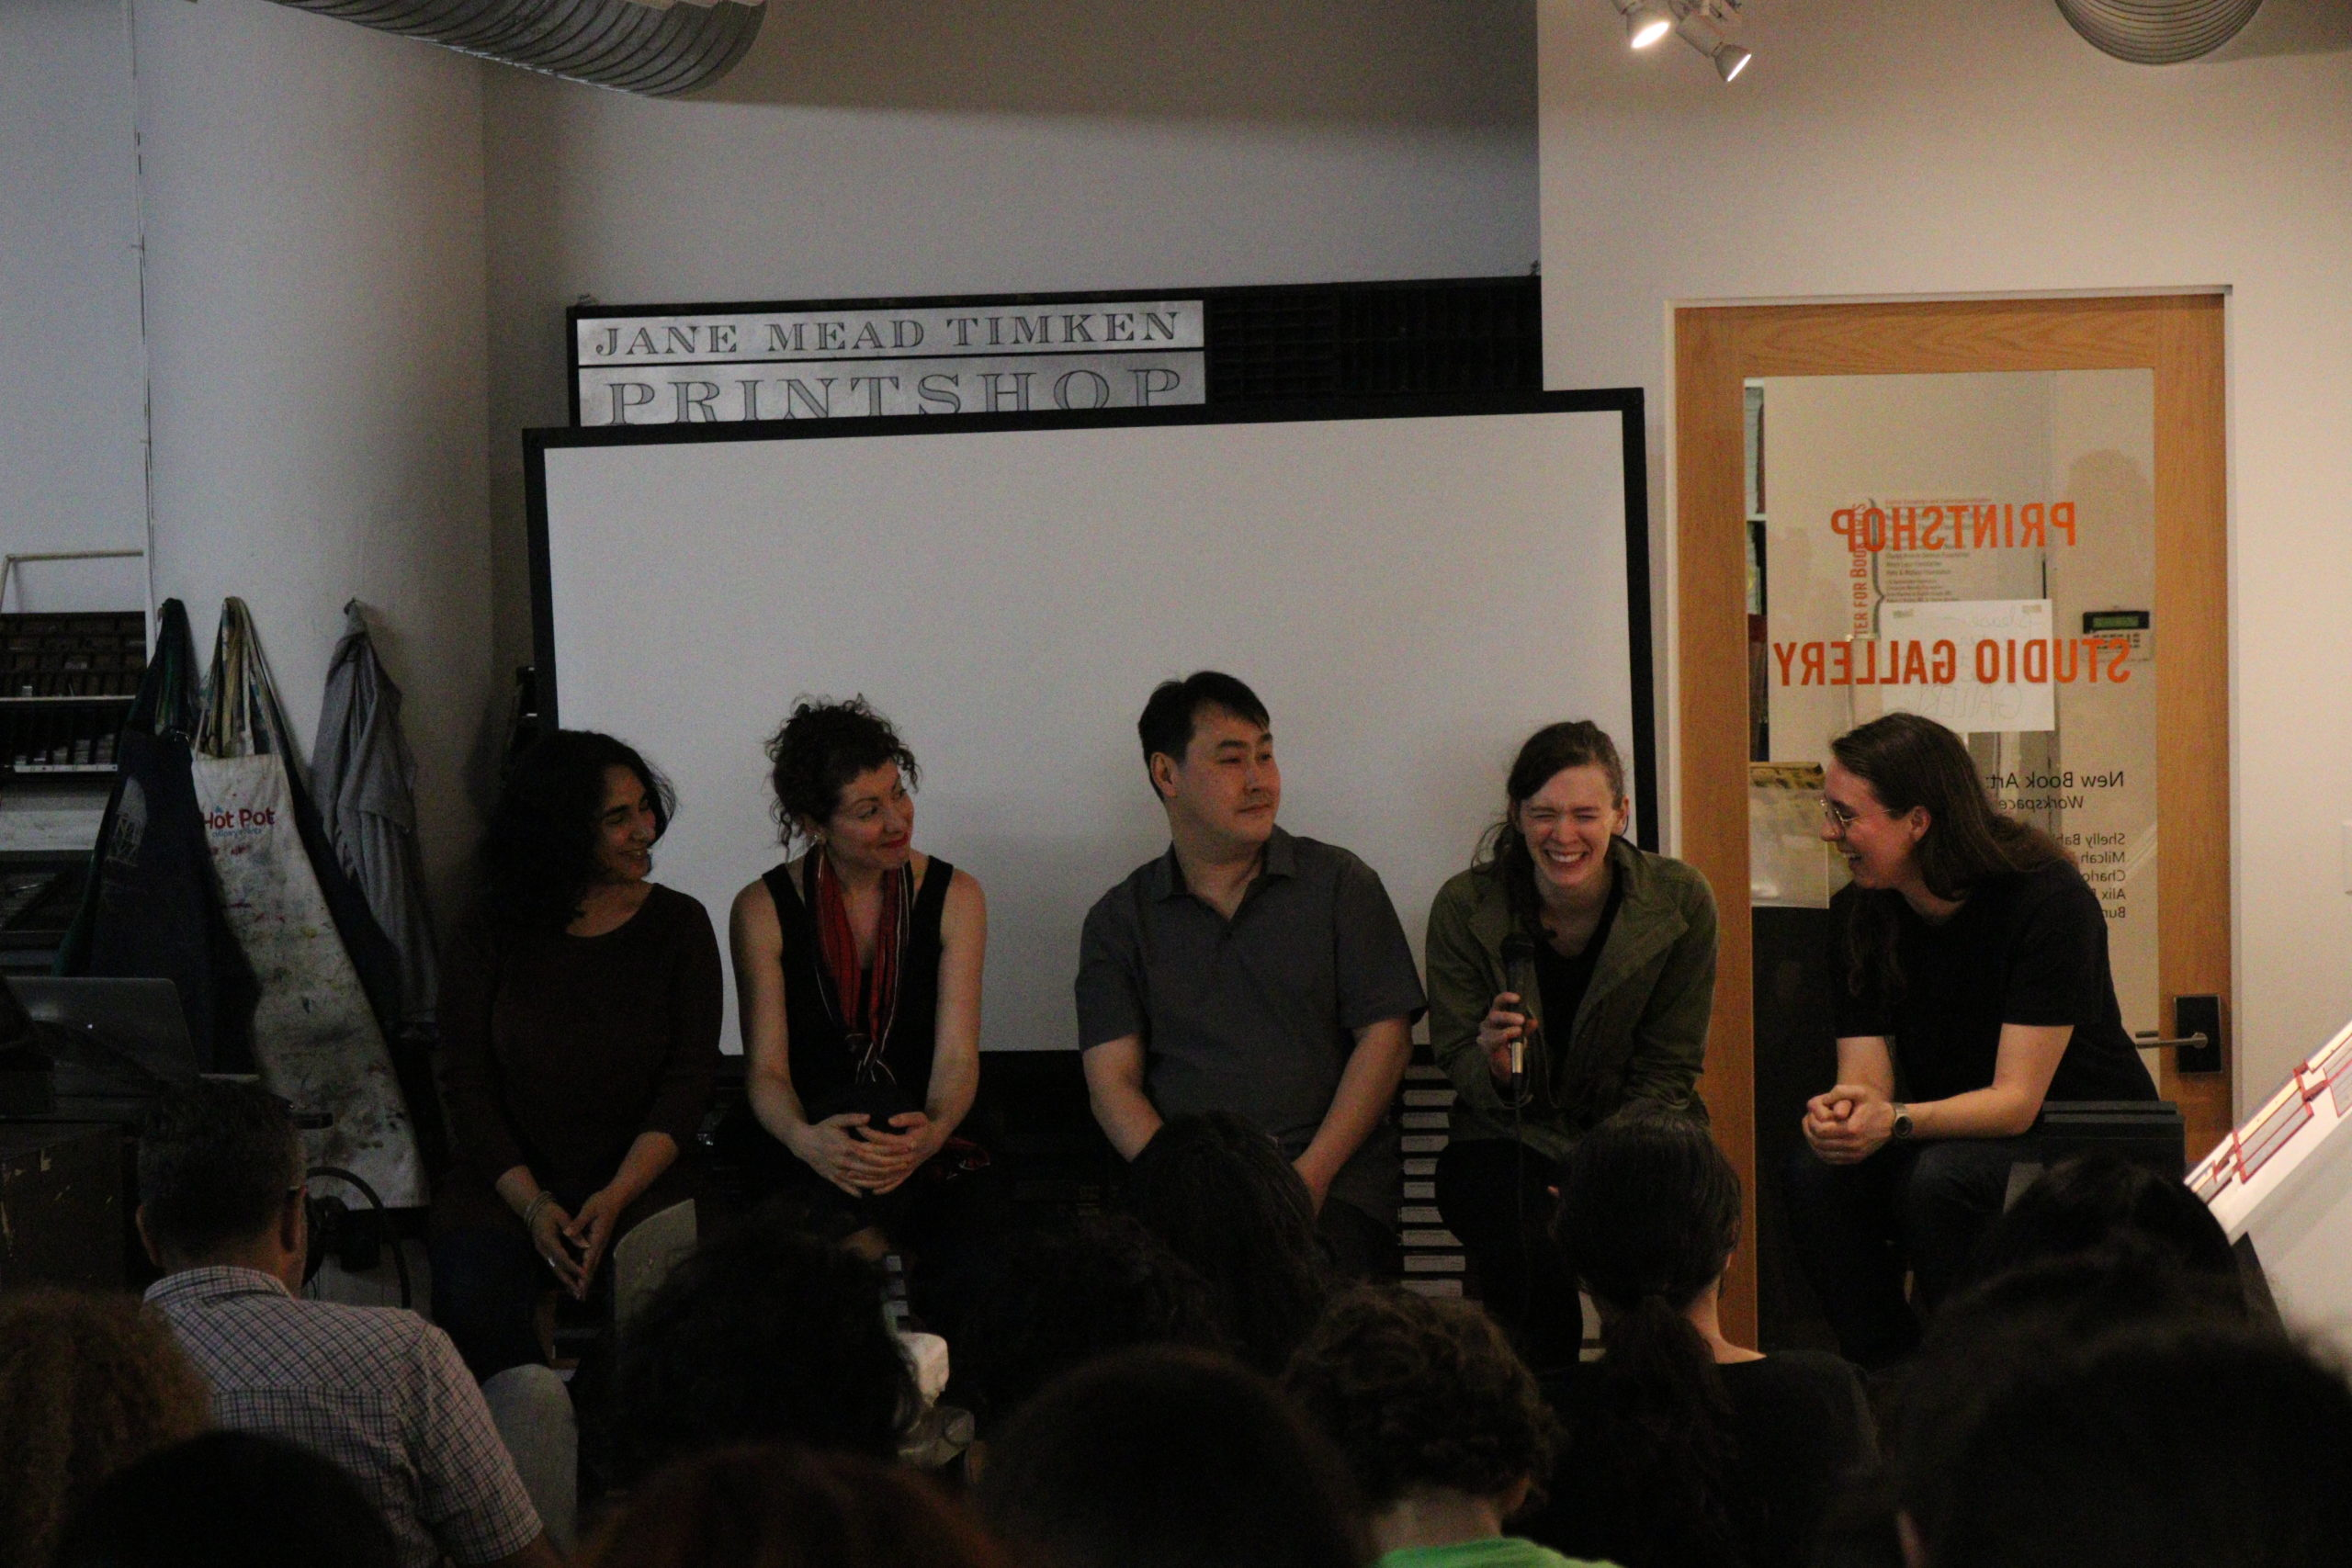 Shelly, Milcah, Bundith, Alix, and Charlott sit in front of a large audience